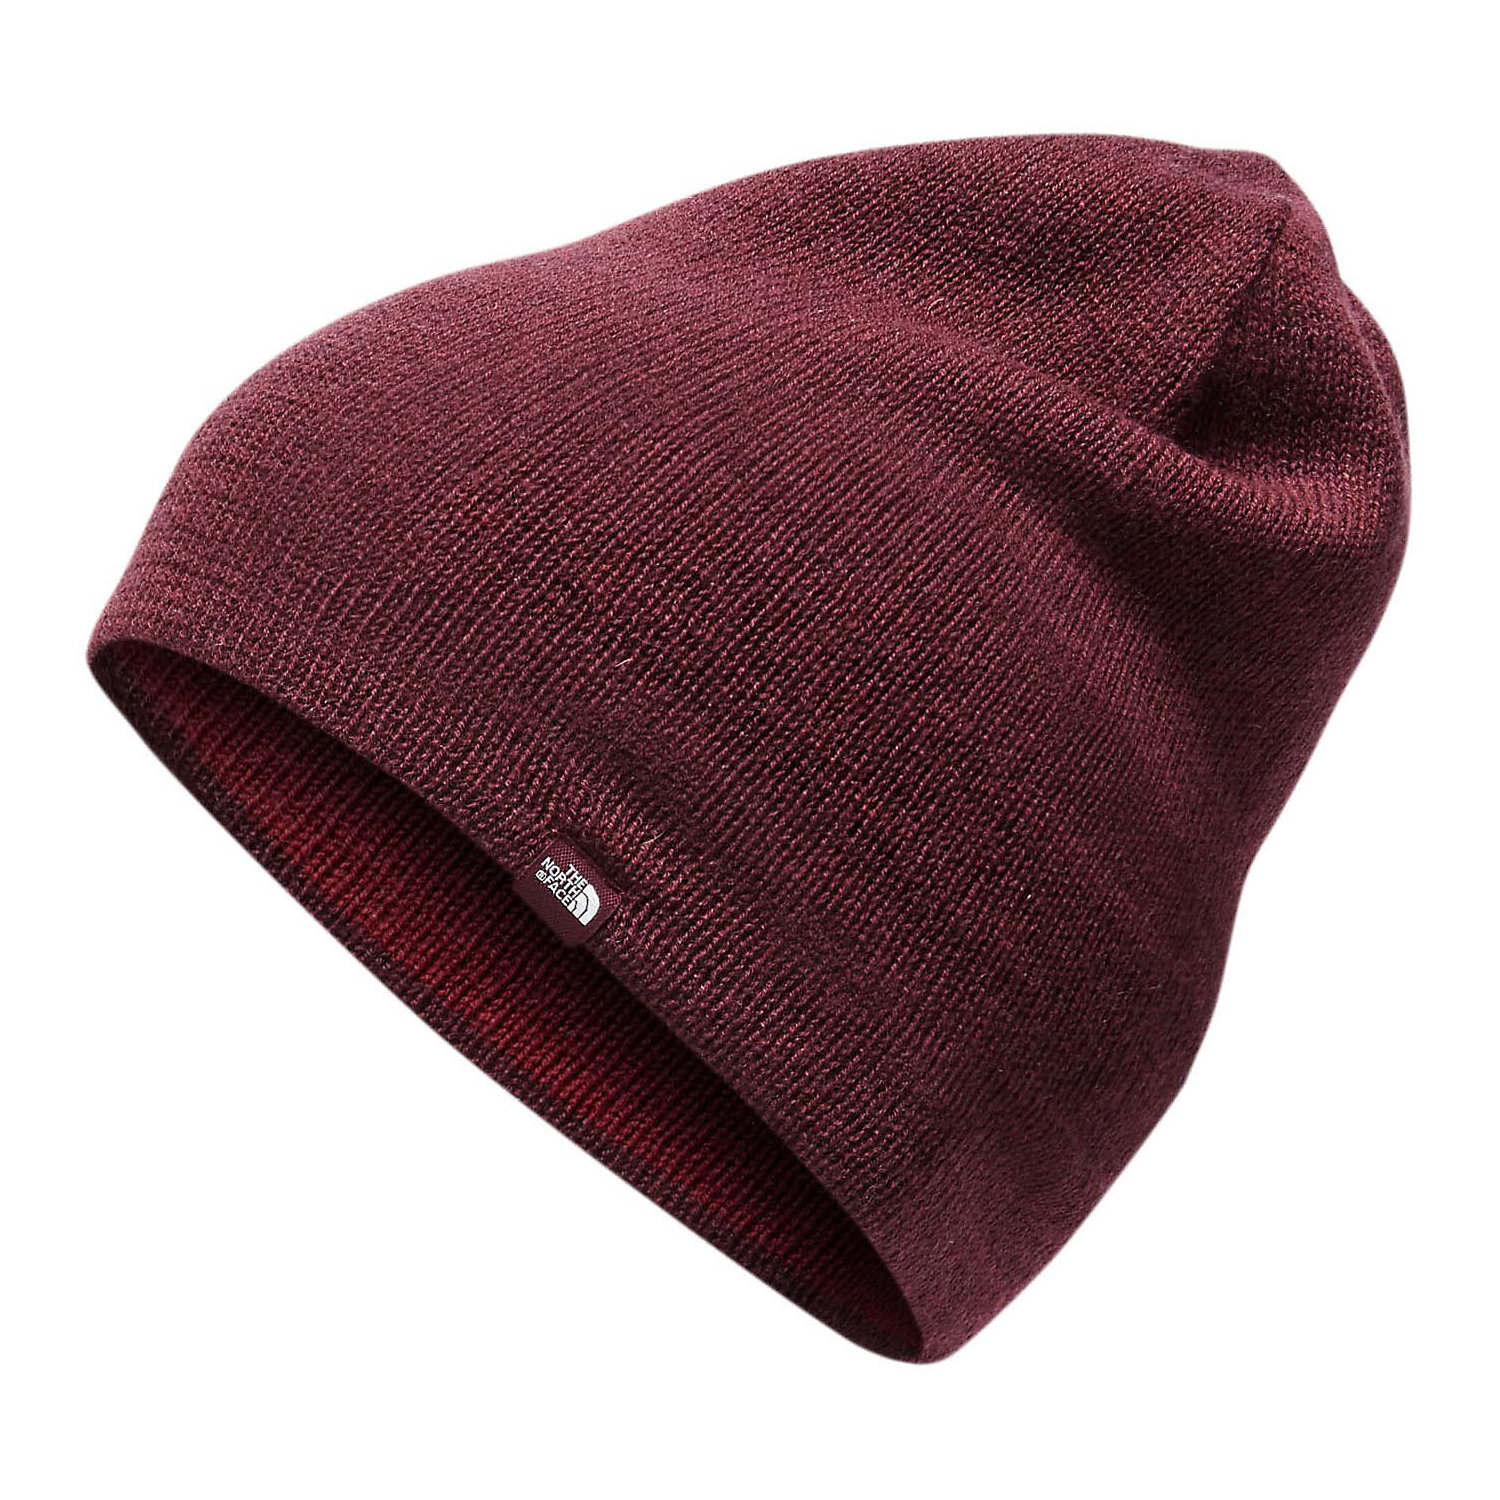 The North Face Merino Reversible Beanie - Moosejaw 99698a30d85